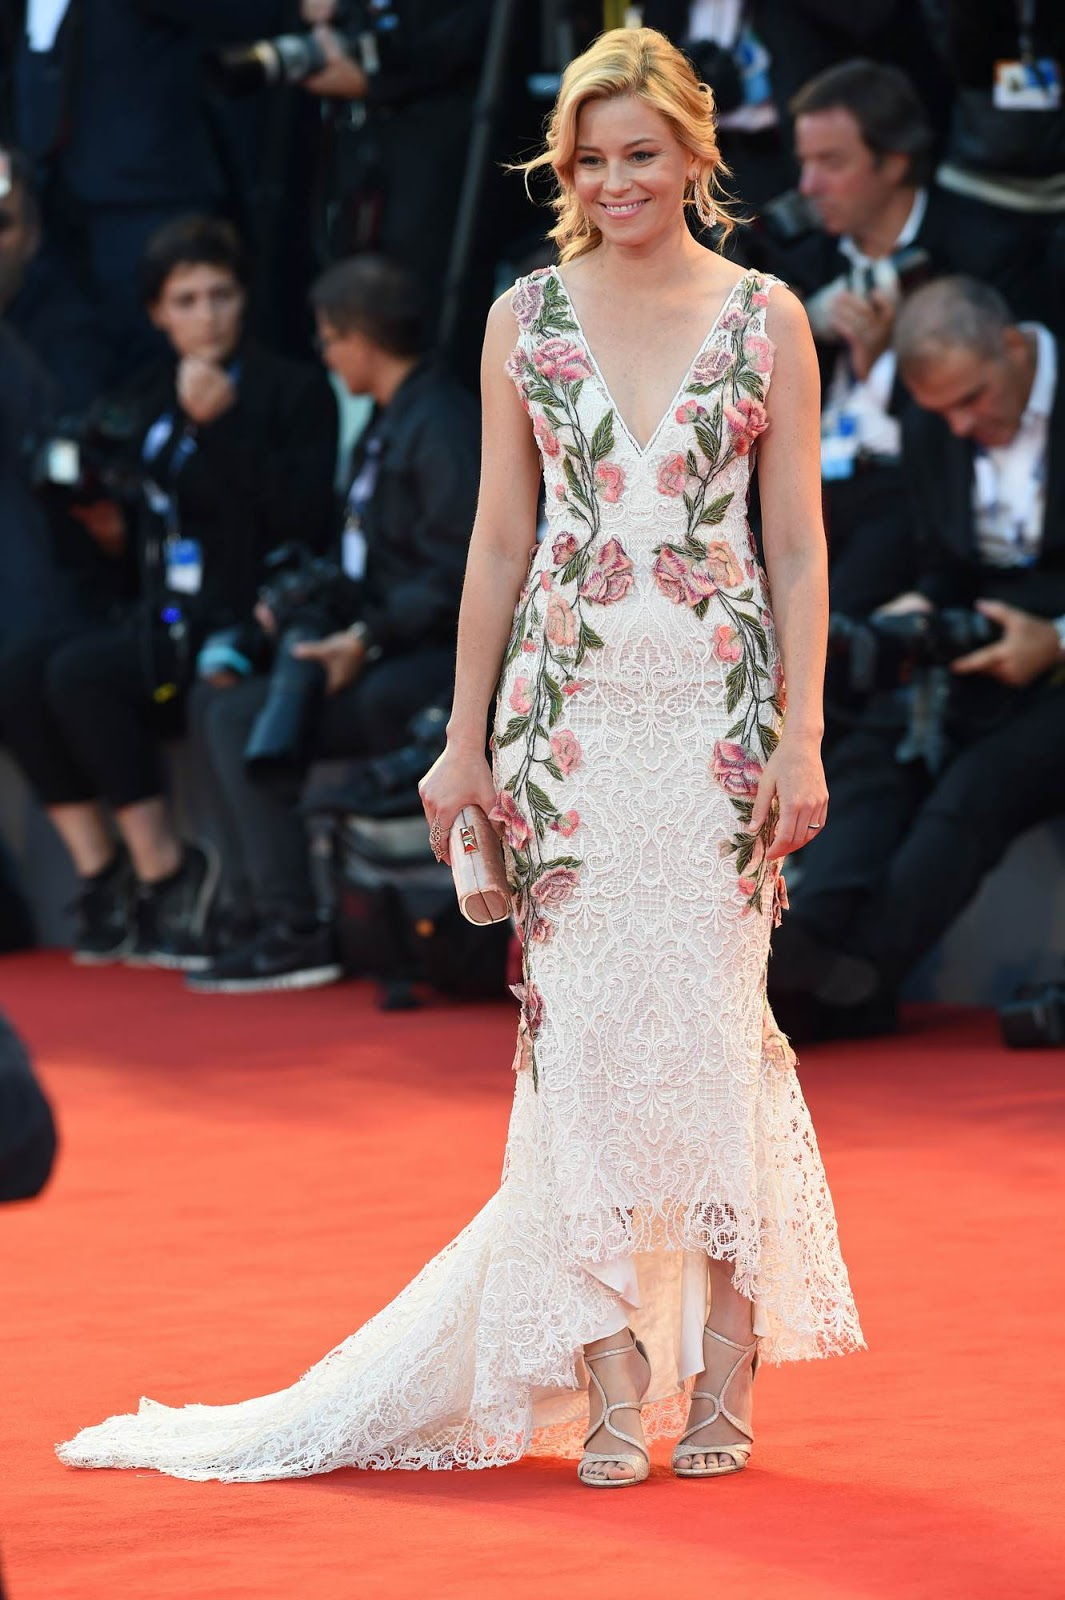 Elizabeth Banks dazzles in lace gown at the premiere of 'A Biger Splash' at the Venice Film Festival